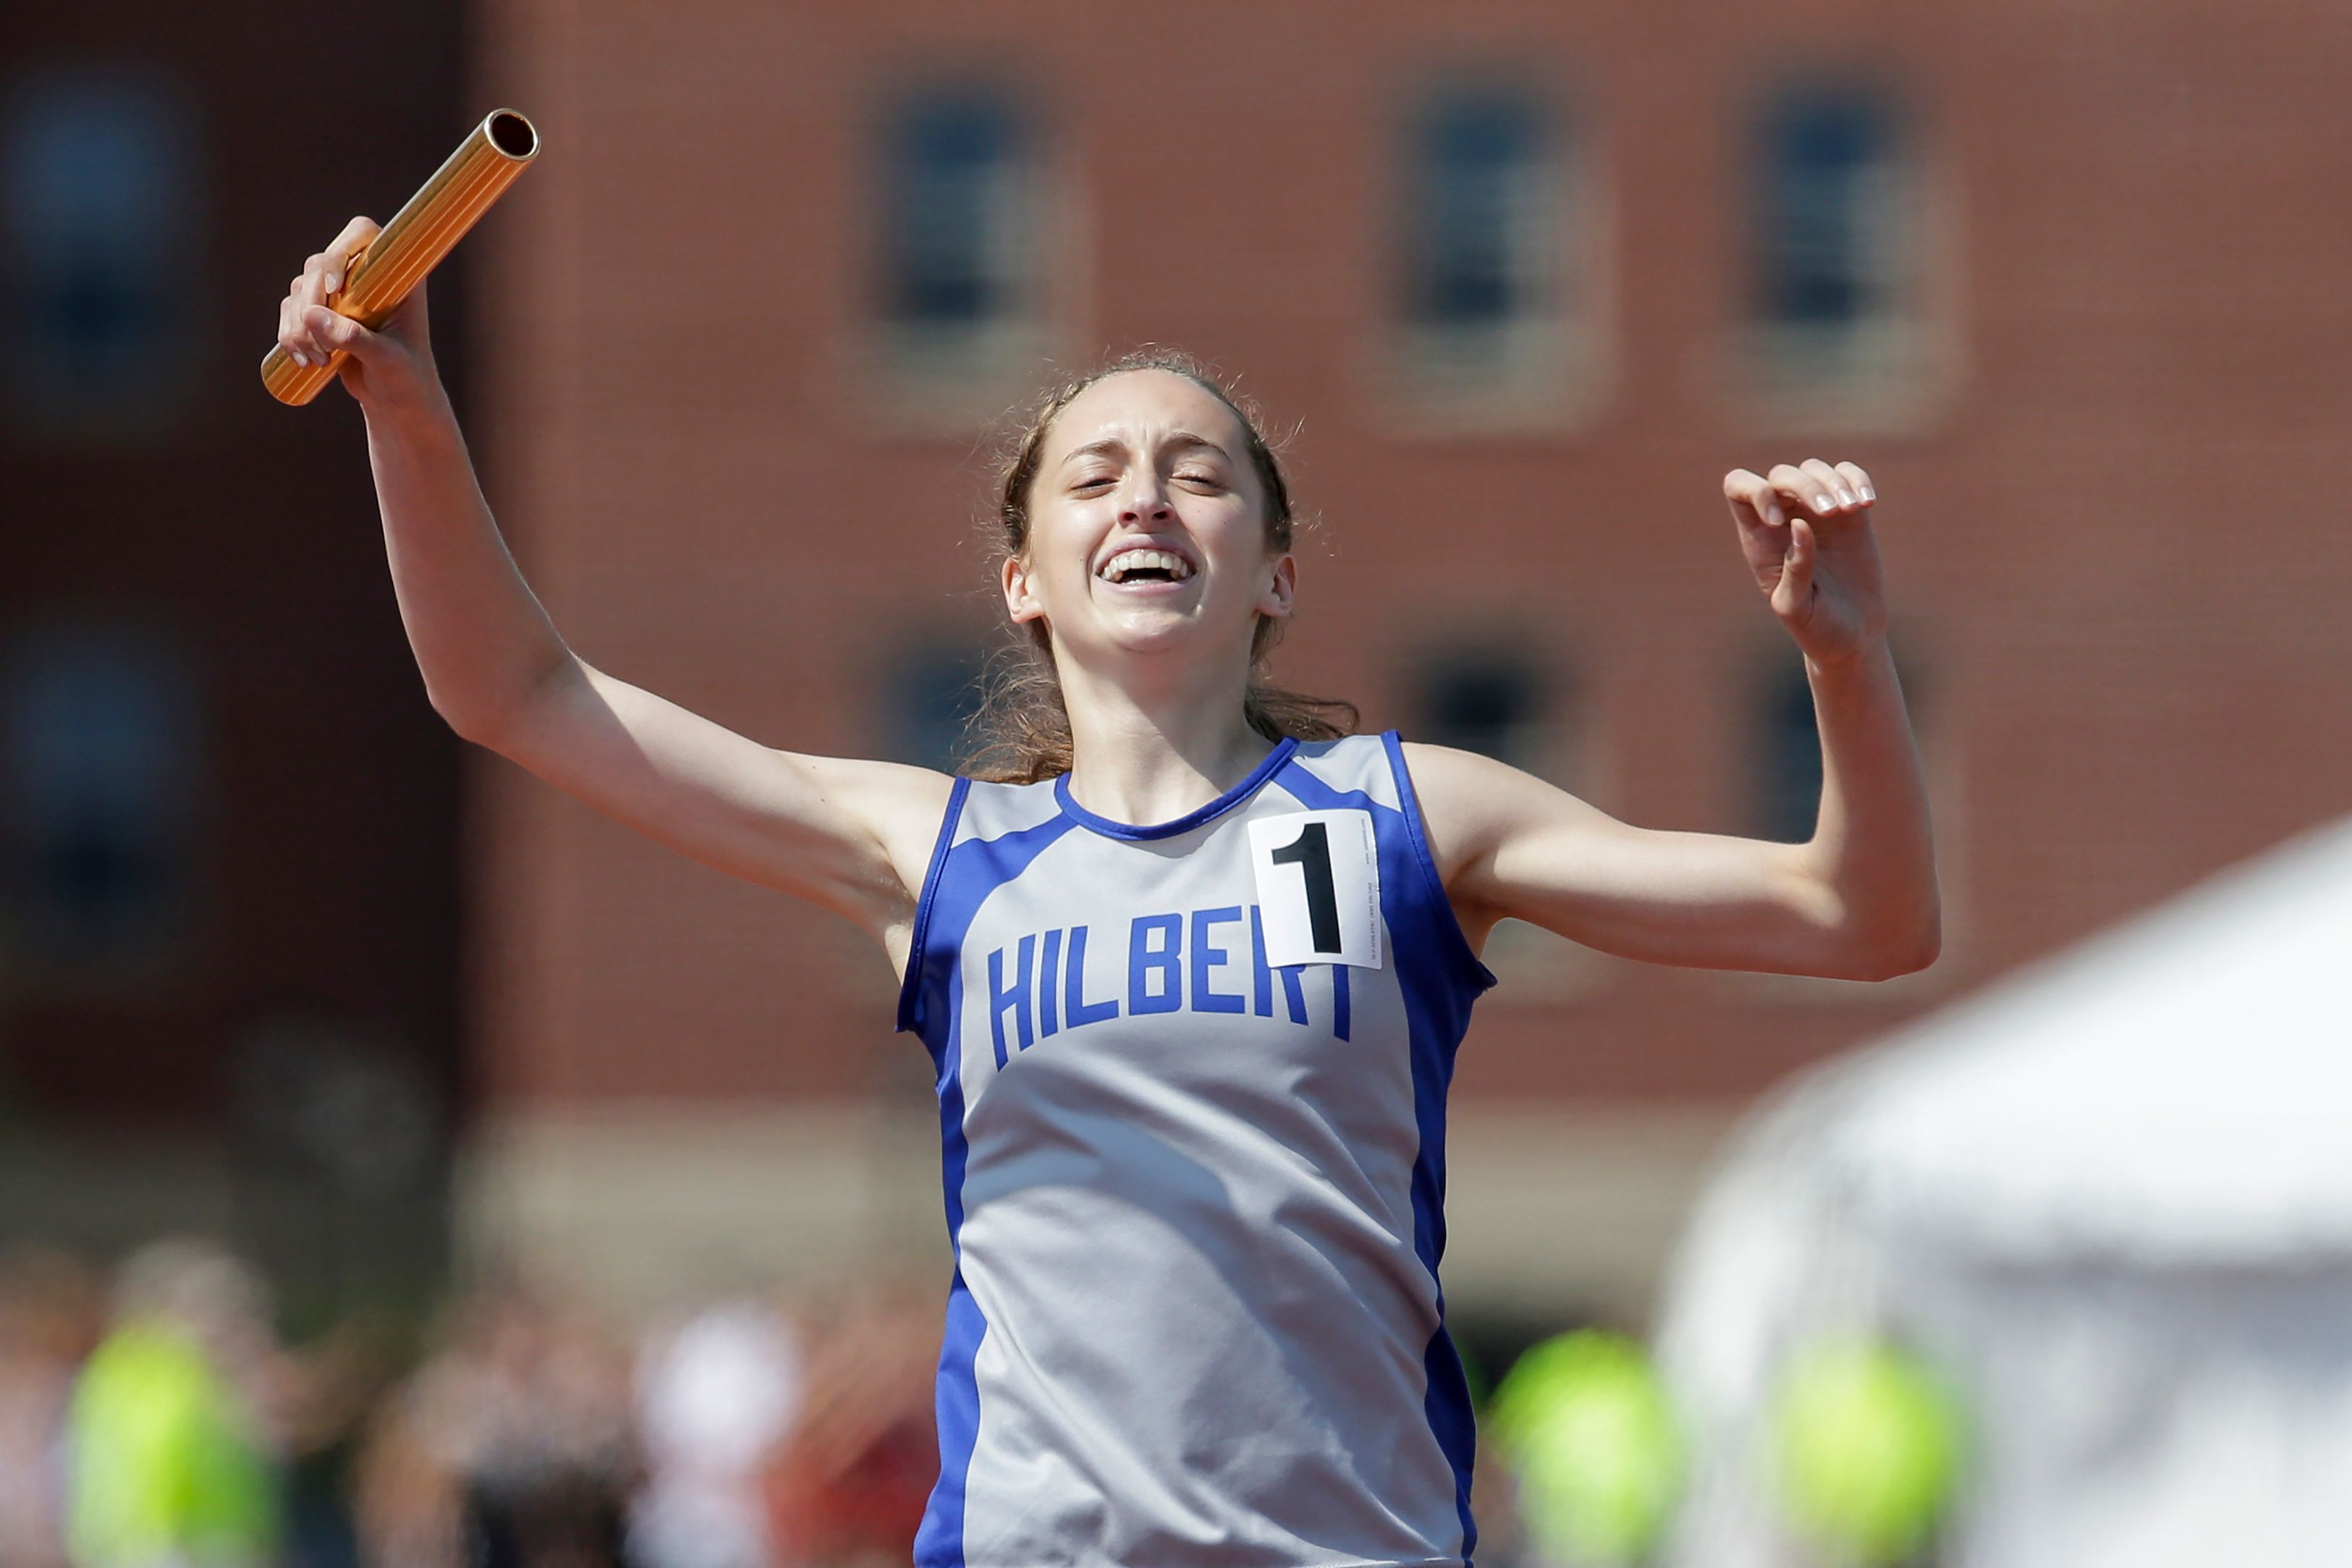 Track and field: Hilbert's Kuhn shooting for state in comeback from PCL injury